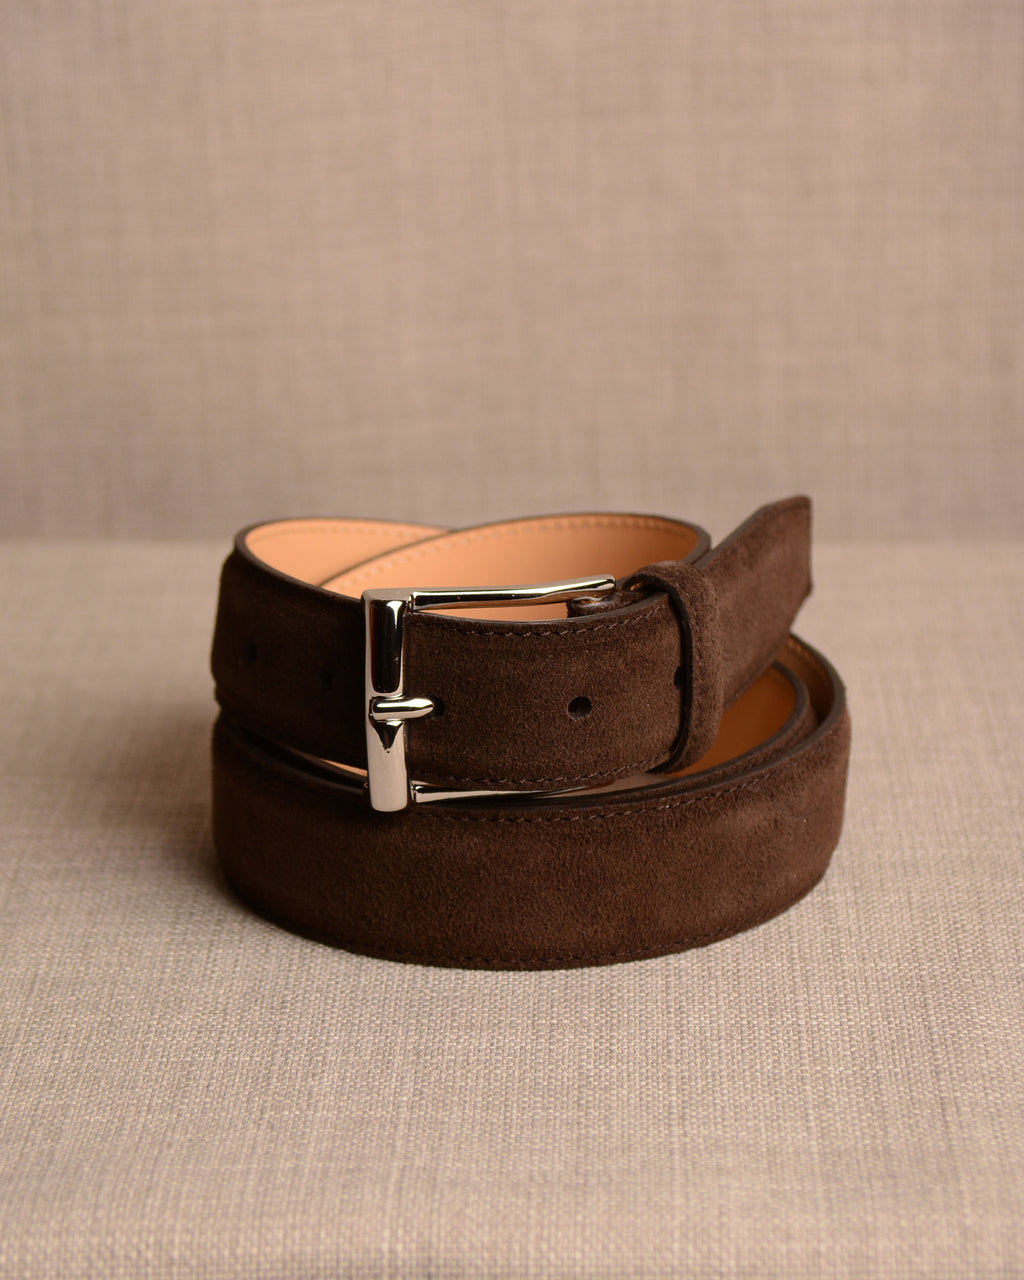 Crockett & Jones - Belt Dark Brown Suede